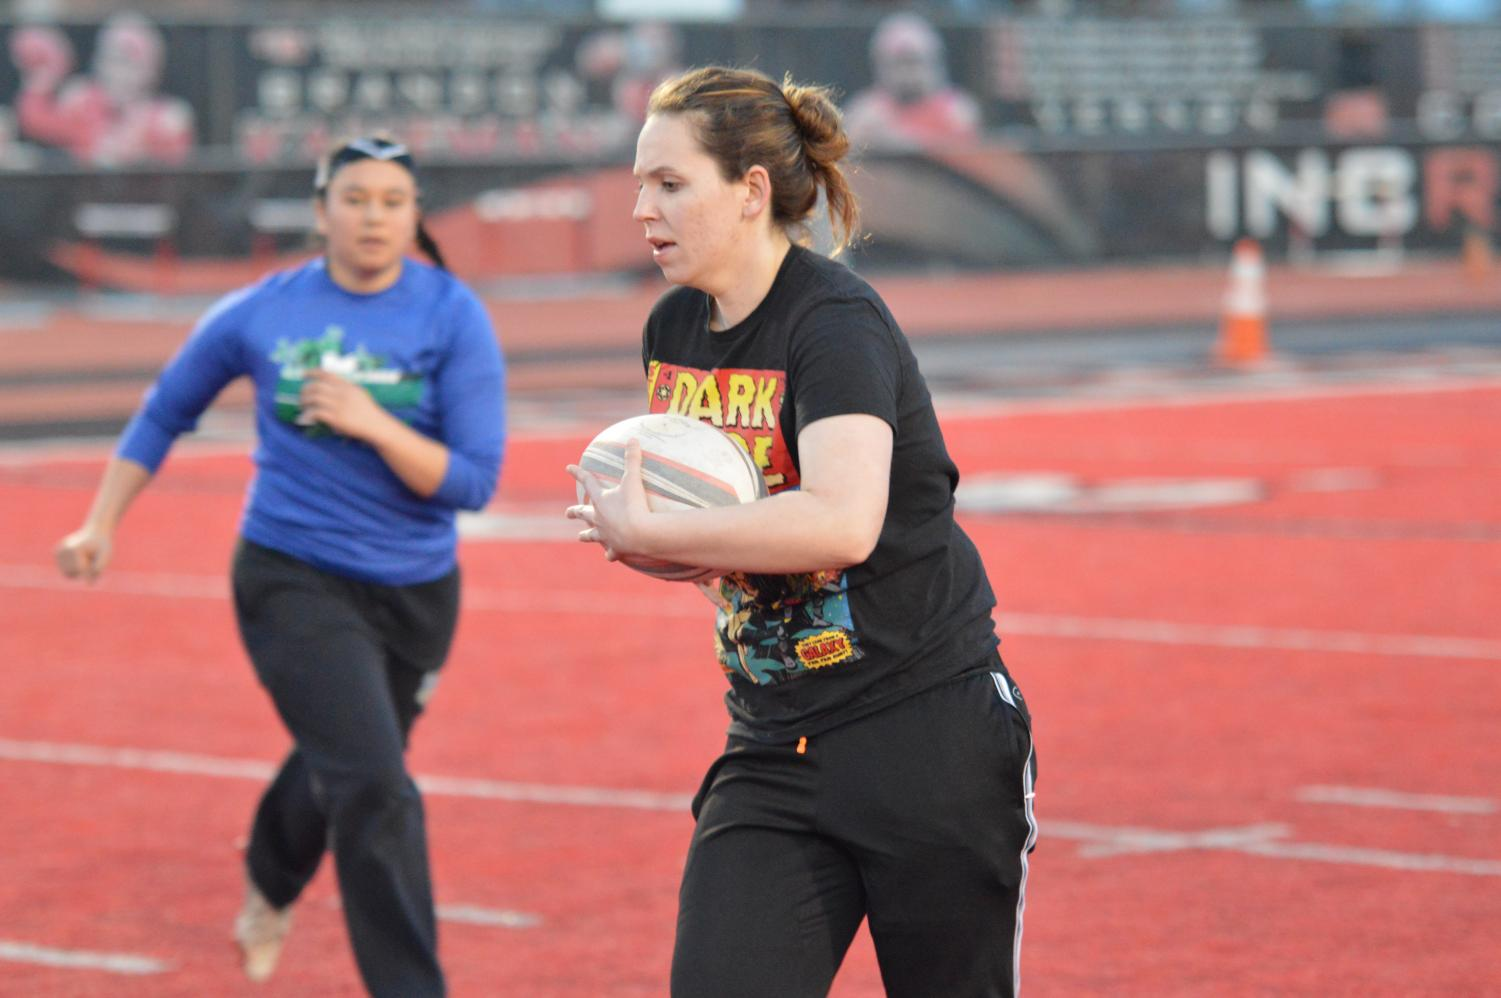 Junior Kailey Wallis caries the ball during practice on April 9. Wallis, who is one of the team's captains, said rugby is